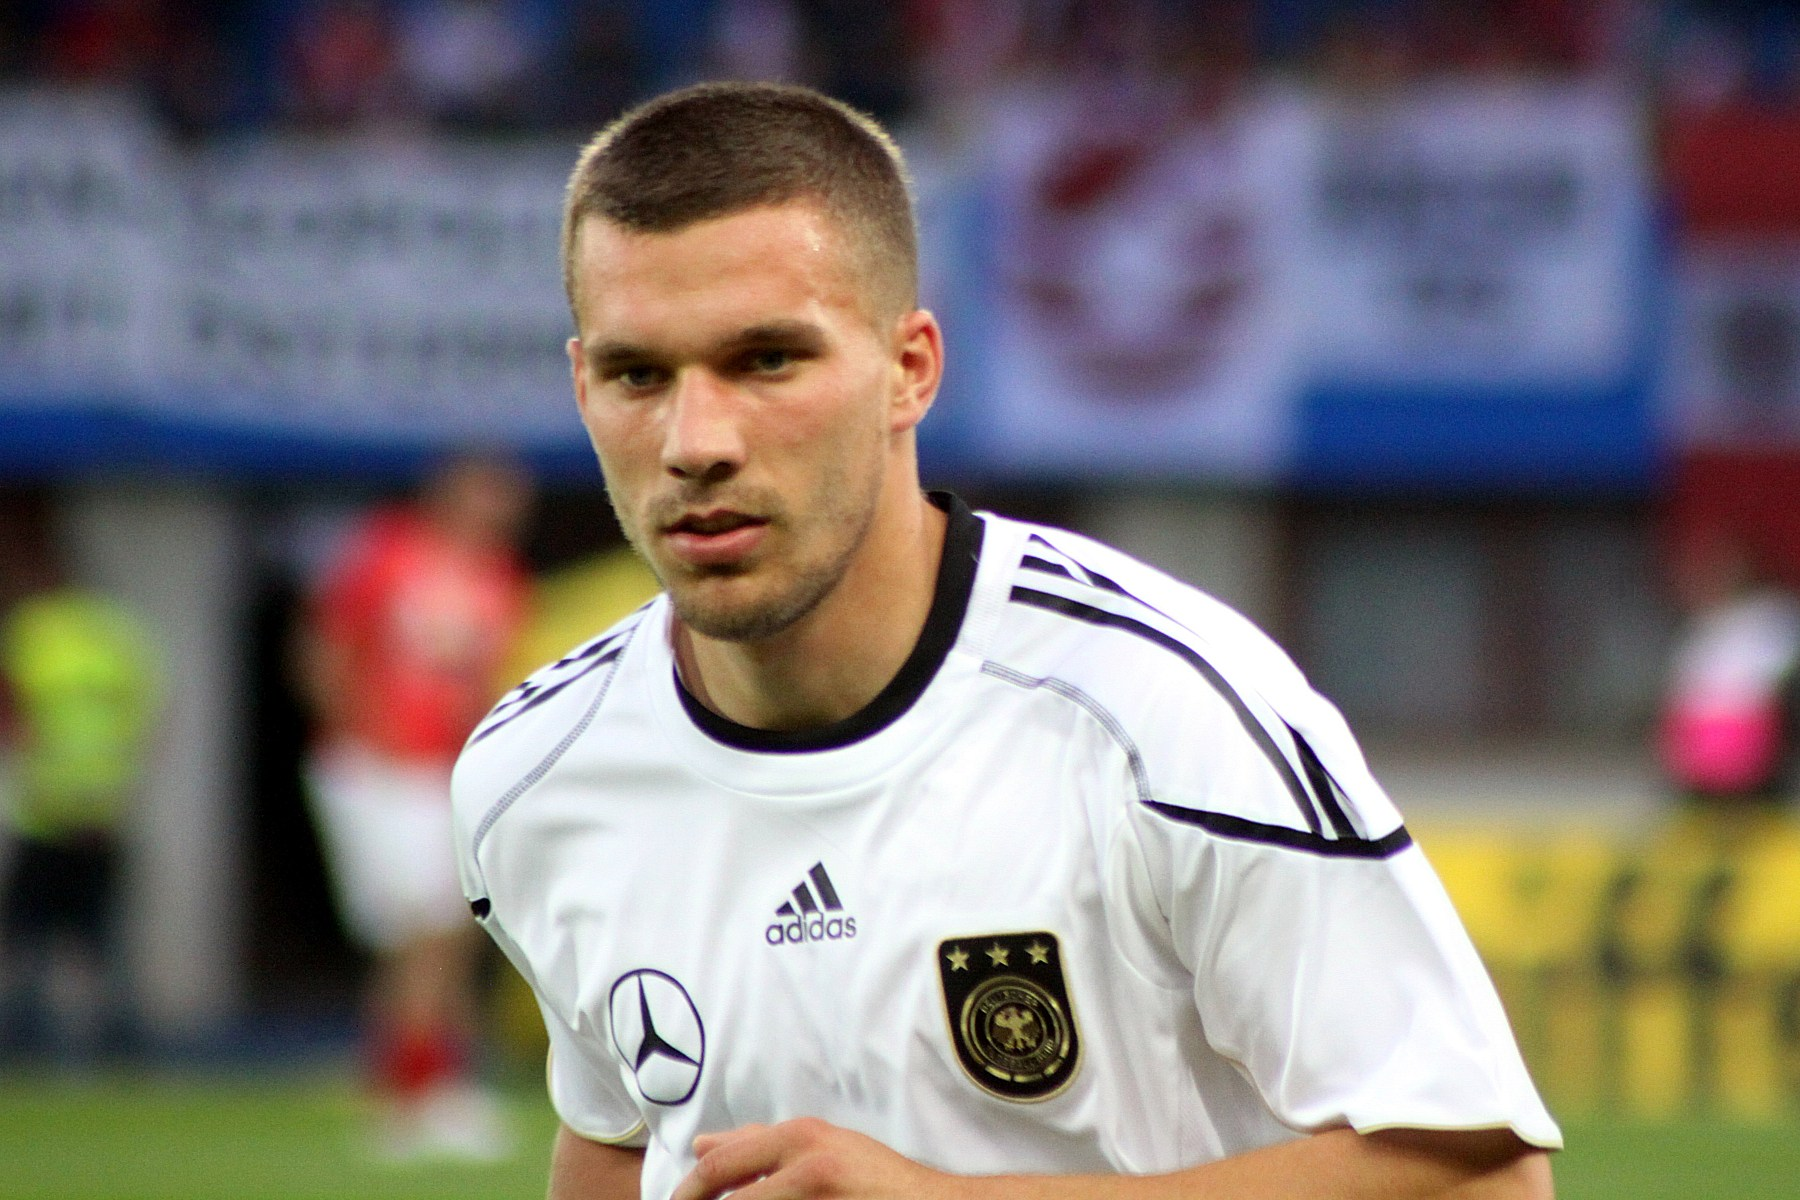 File:Lukas Podolski, Germany national football team (05